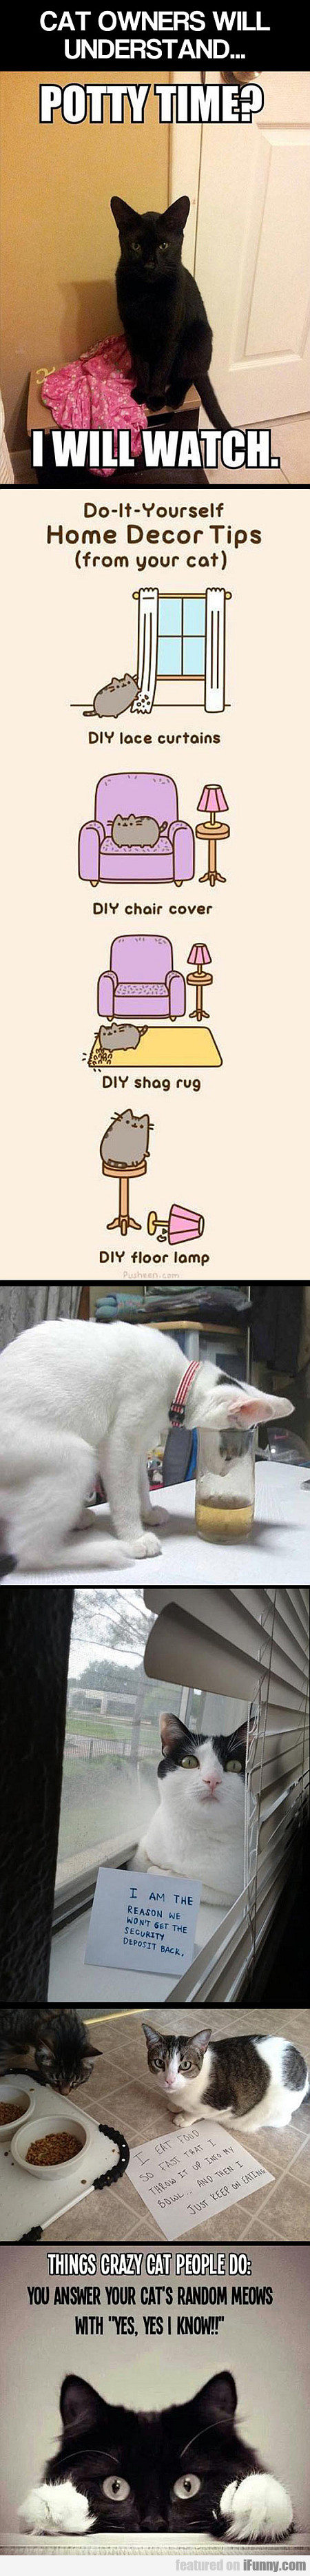 Cat Owners Will Understand...